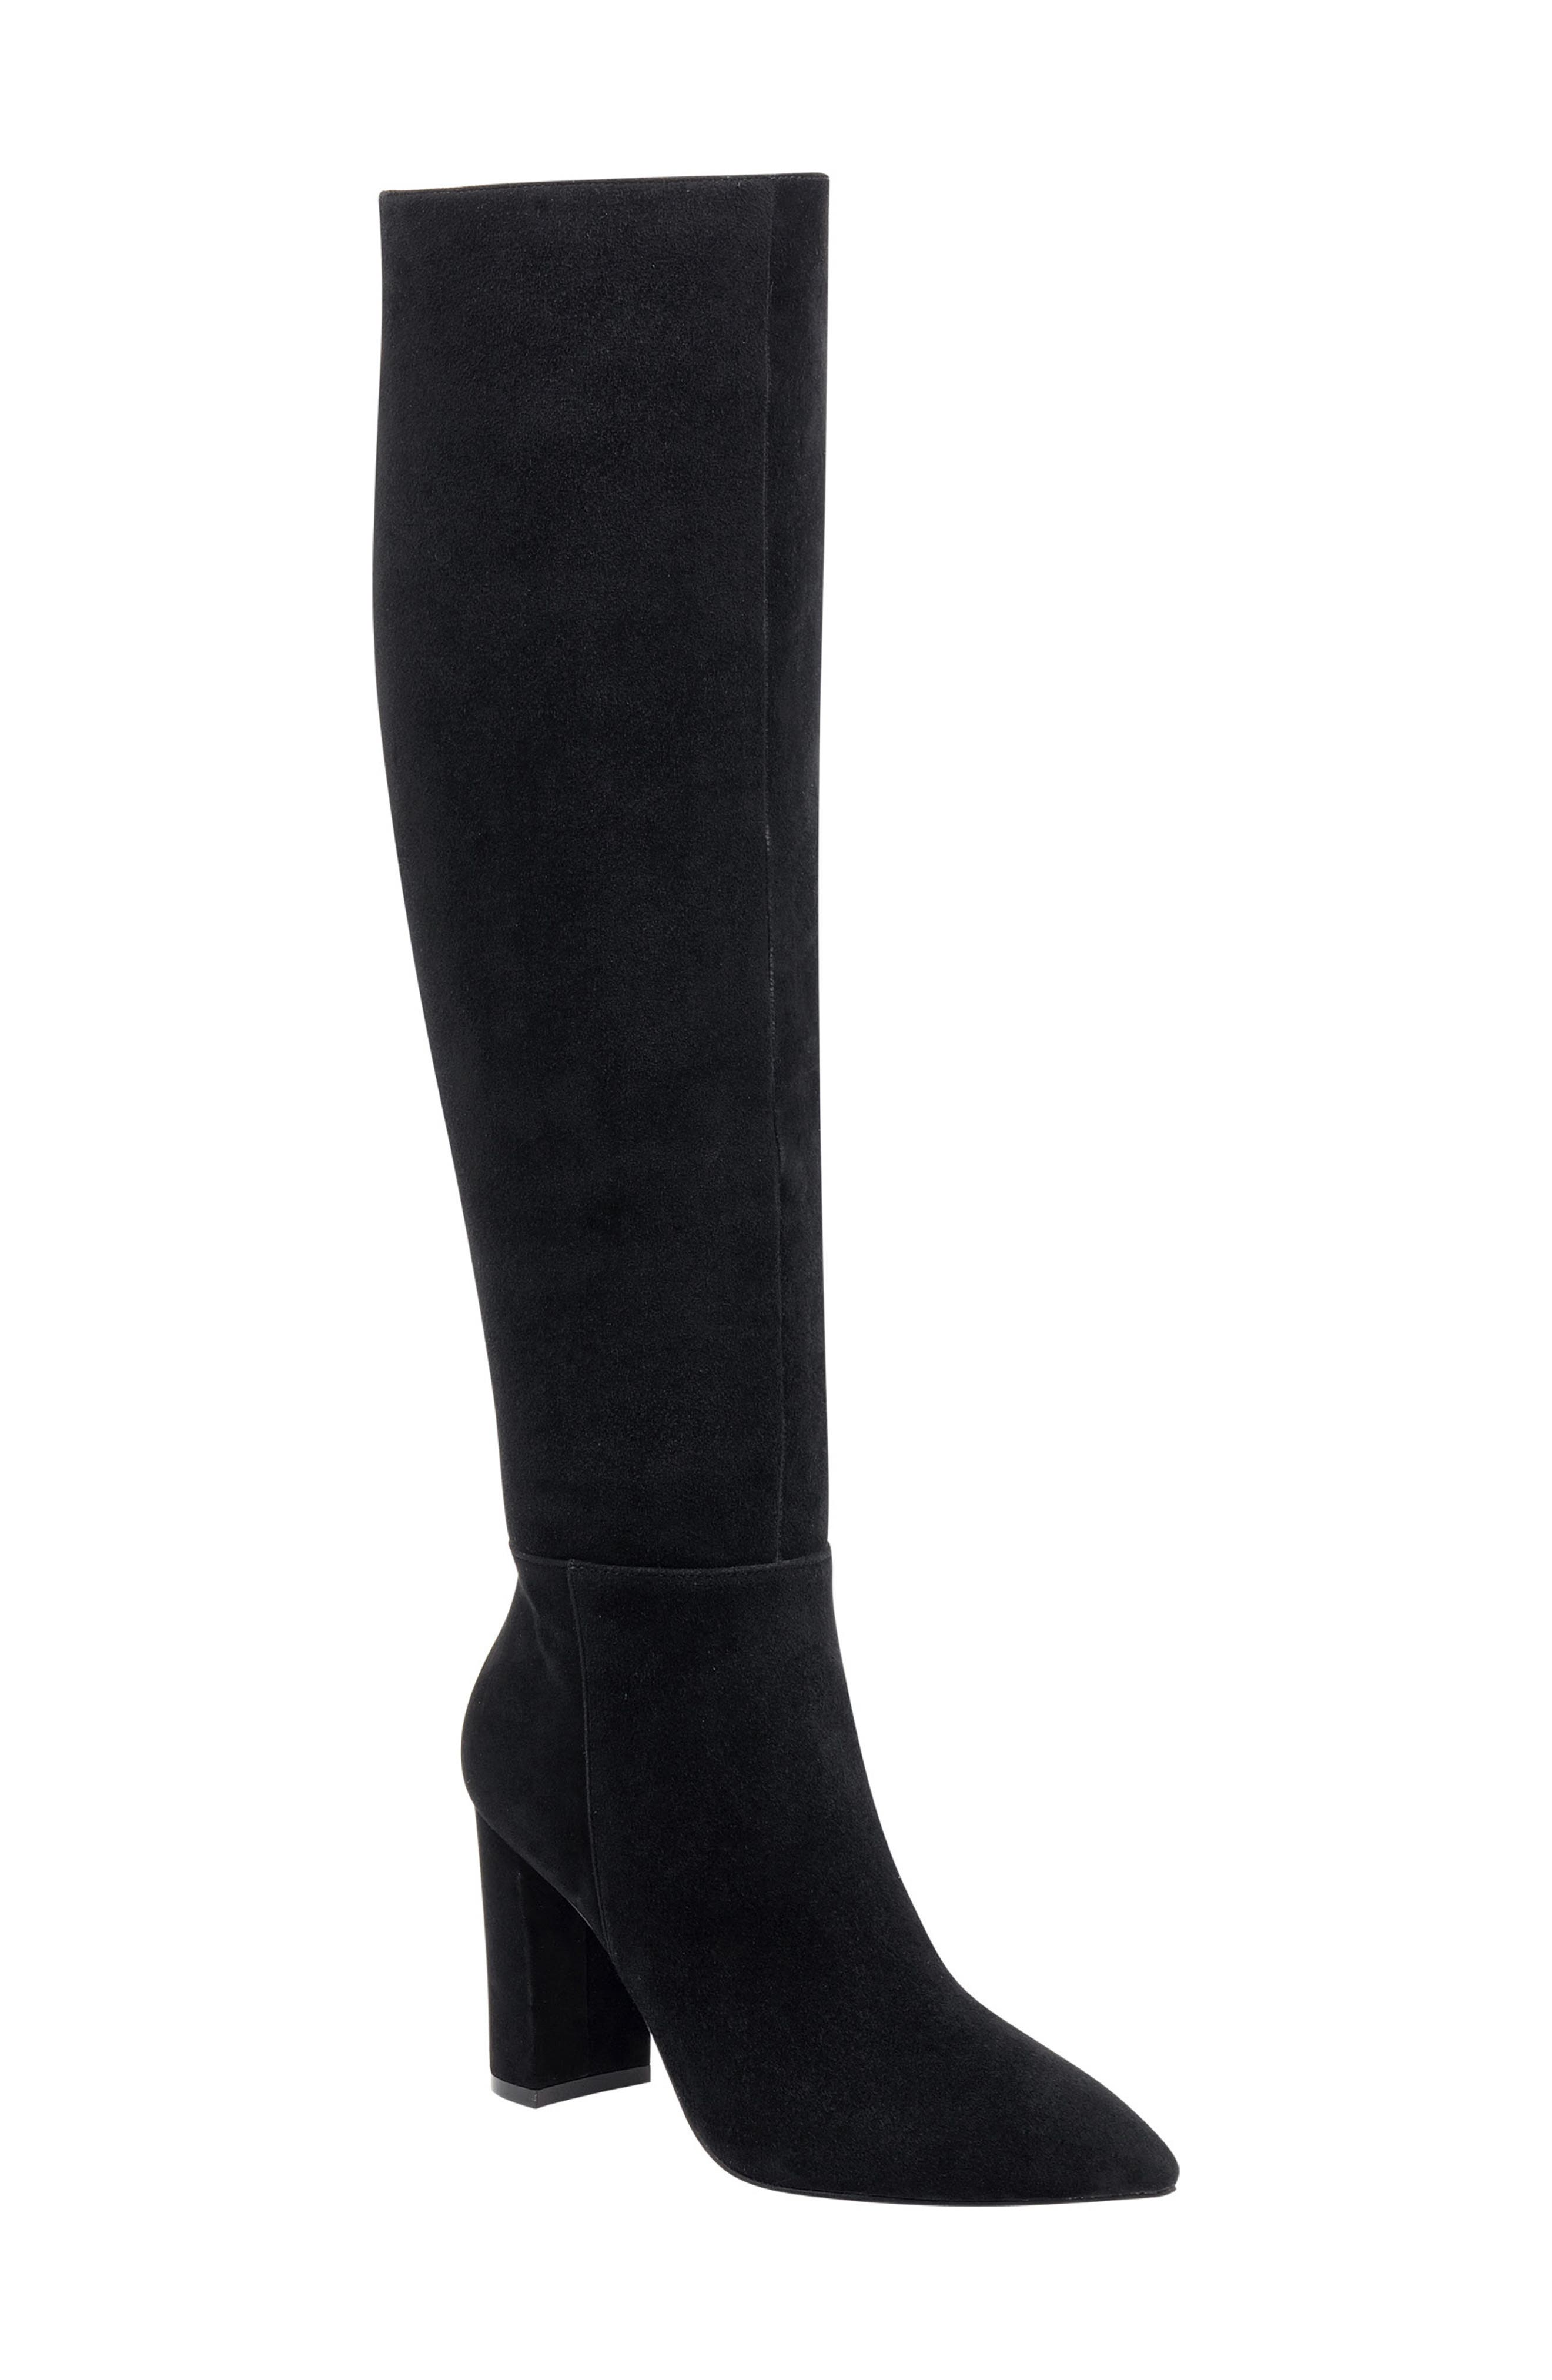 Ulana Knee High Boot,                         Main,                         color, BLACK SUEDE